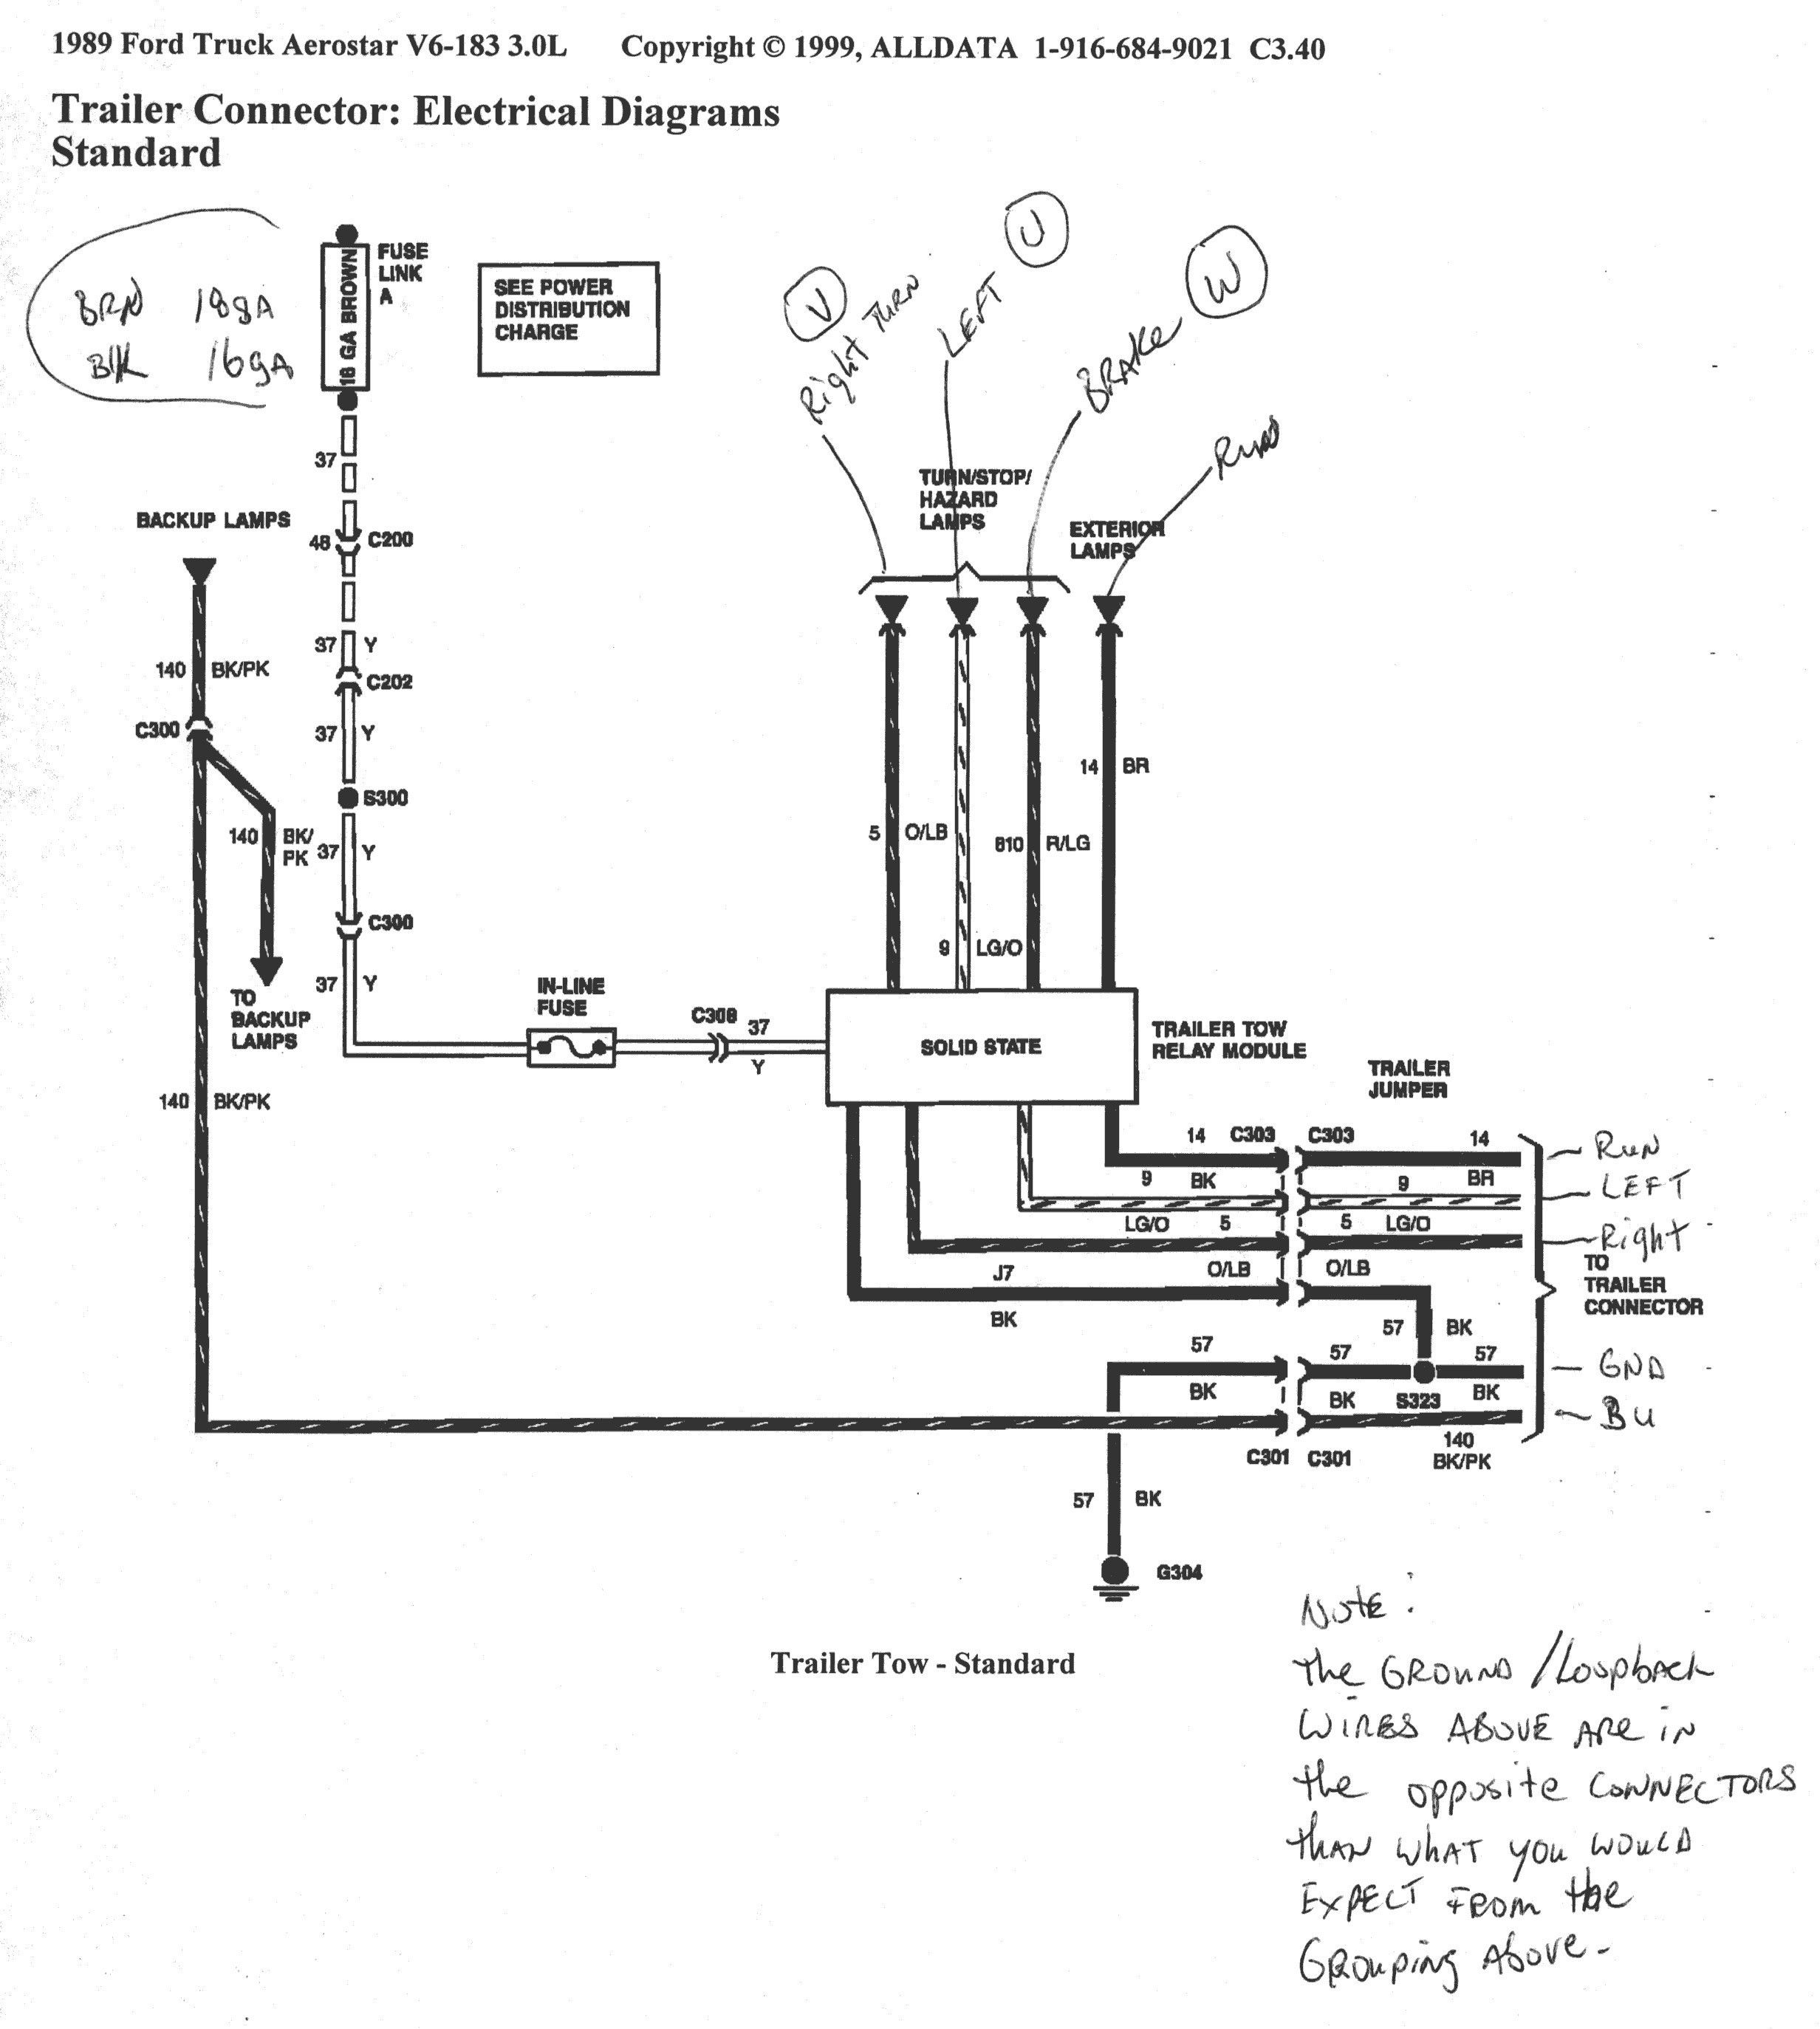 1995 Ford F150 Parts Diagram In 2020 Trailer Wiring Diagram Diagram Electrical Diagram